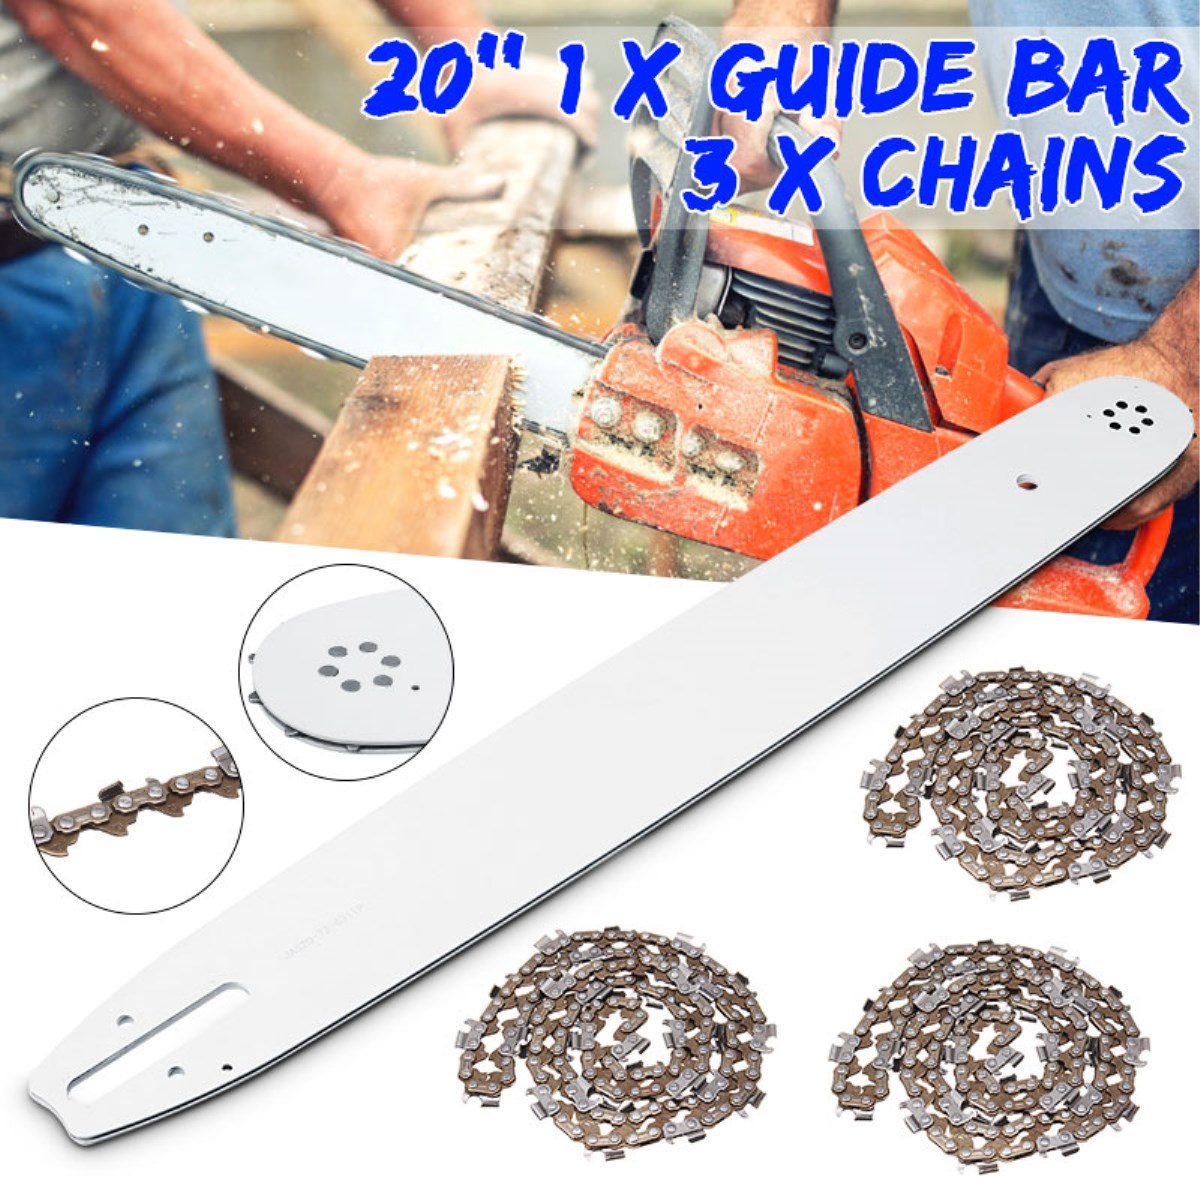 20inch Guide Bar And 325 058 76DL Chains For Baumr-Ag SX62 SX66 62CC 66CC Chainsaw Chain Saw Accessories